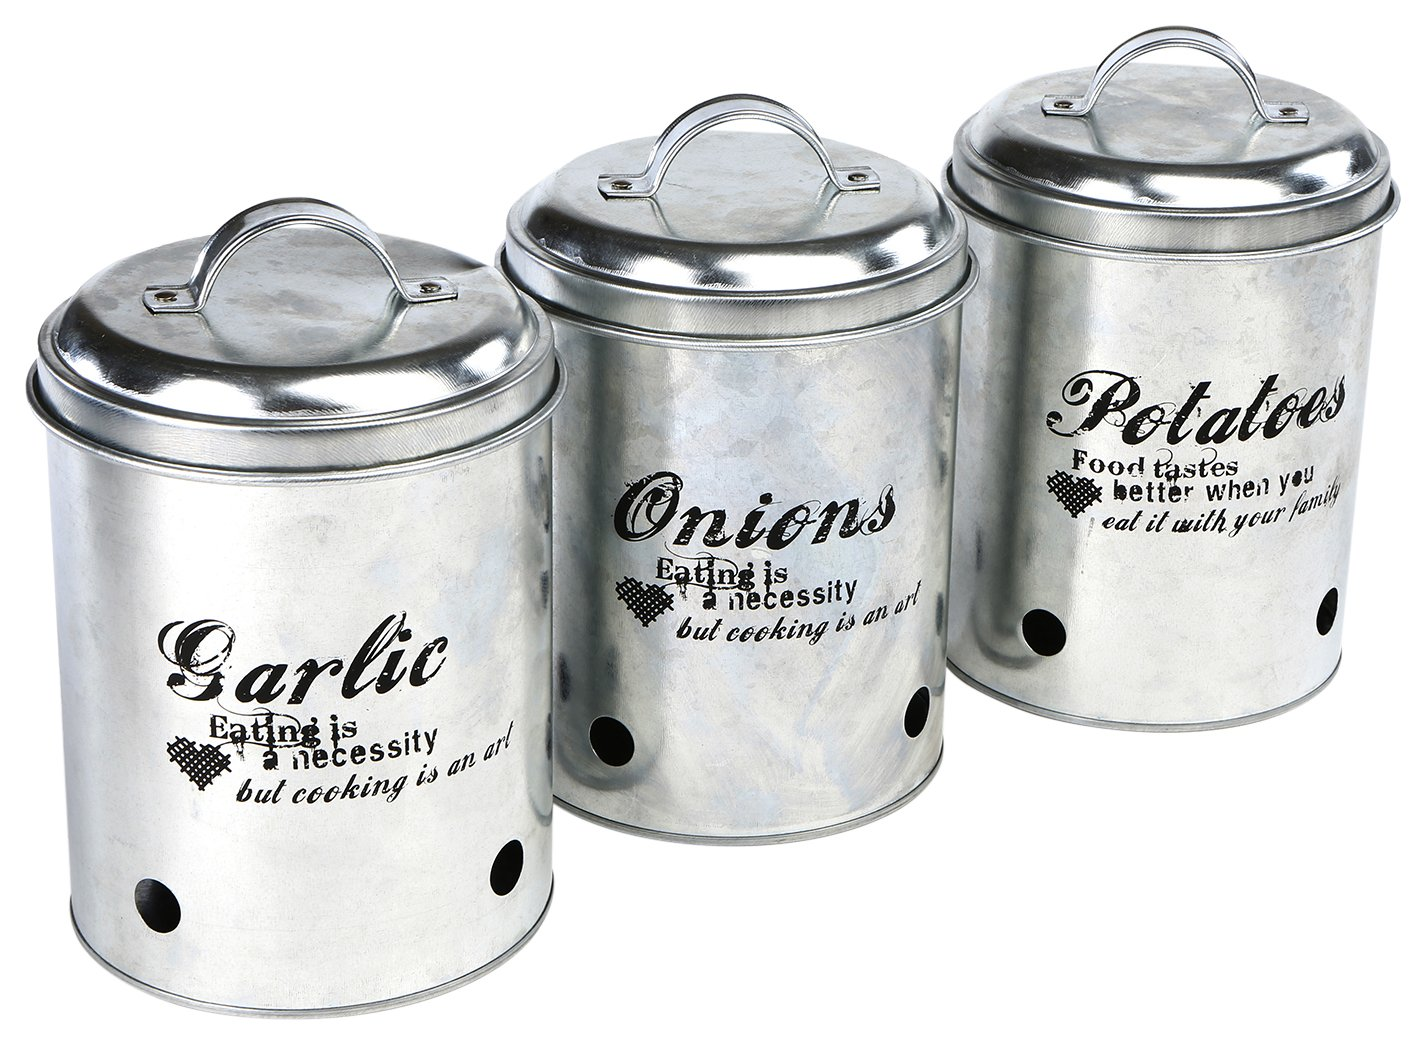 Mind Reader 3 Piece Garlic, Onion, Potatoes Metal Canister Set, Silver by Mind Reader